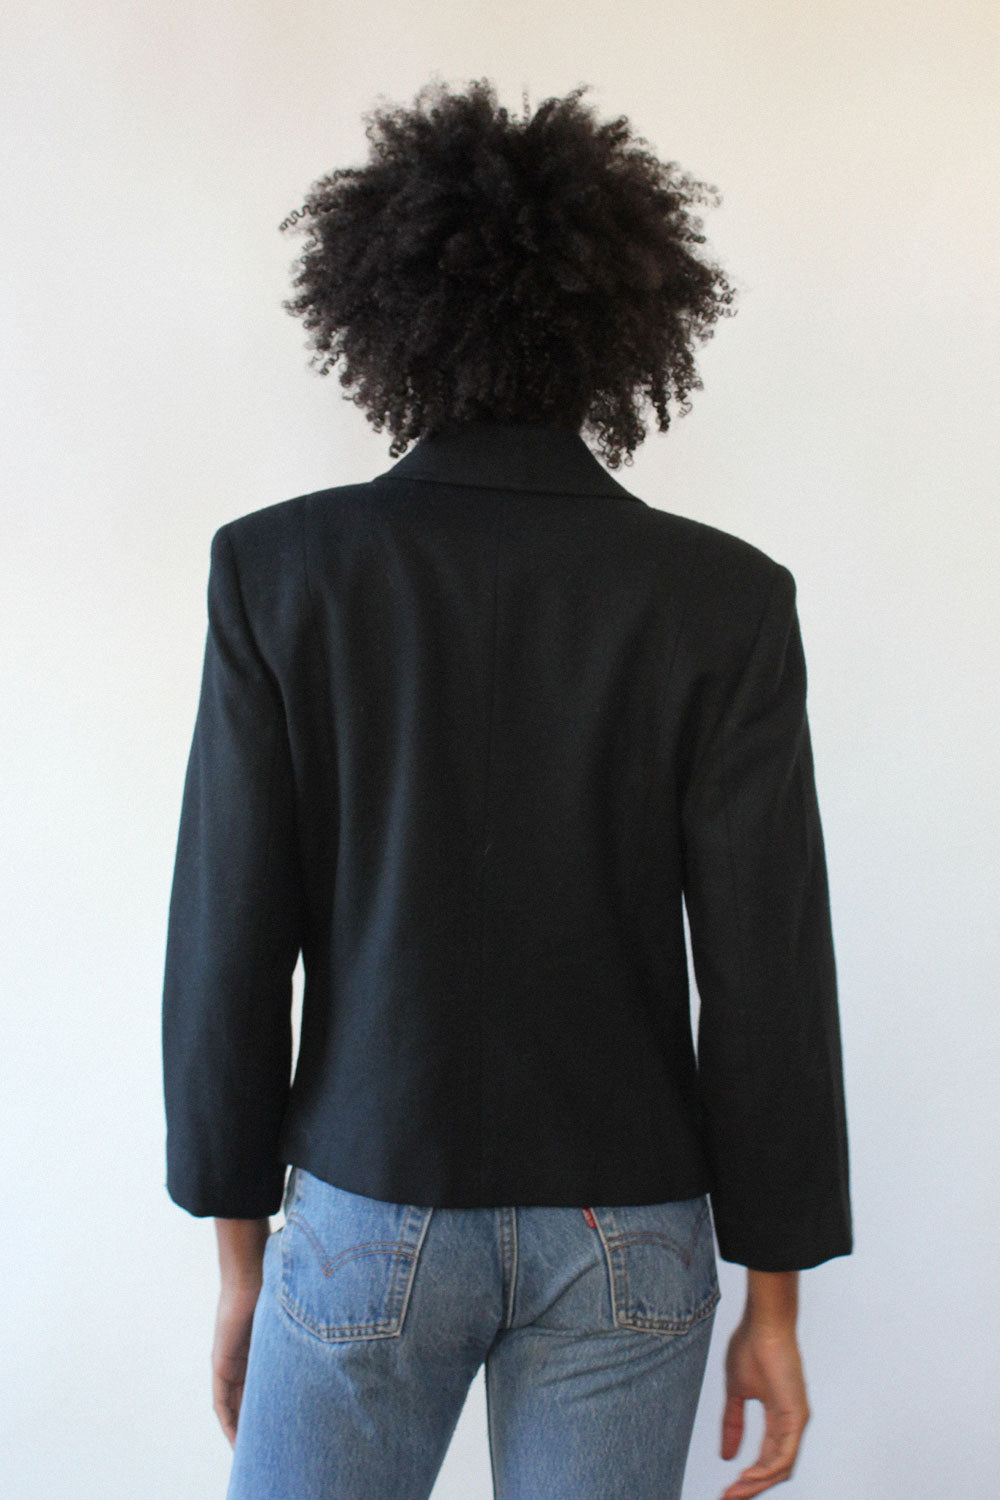 Cropped Pea Coat S/M